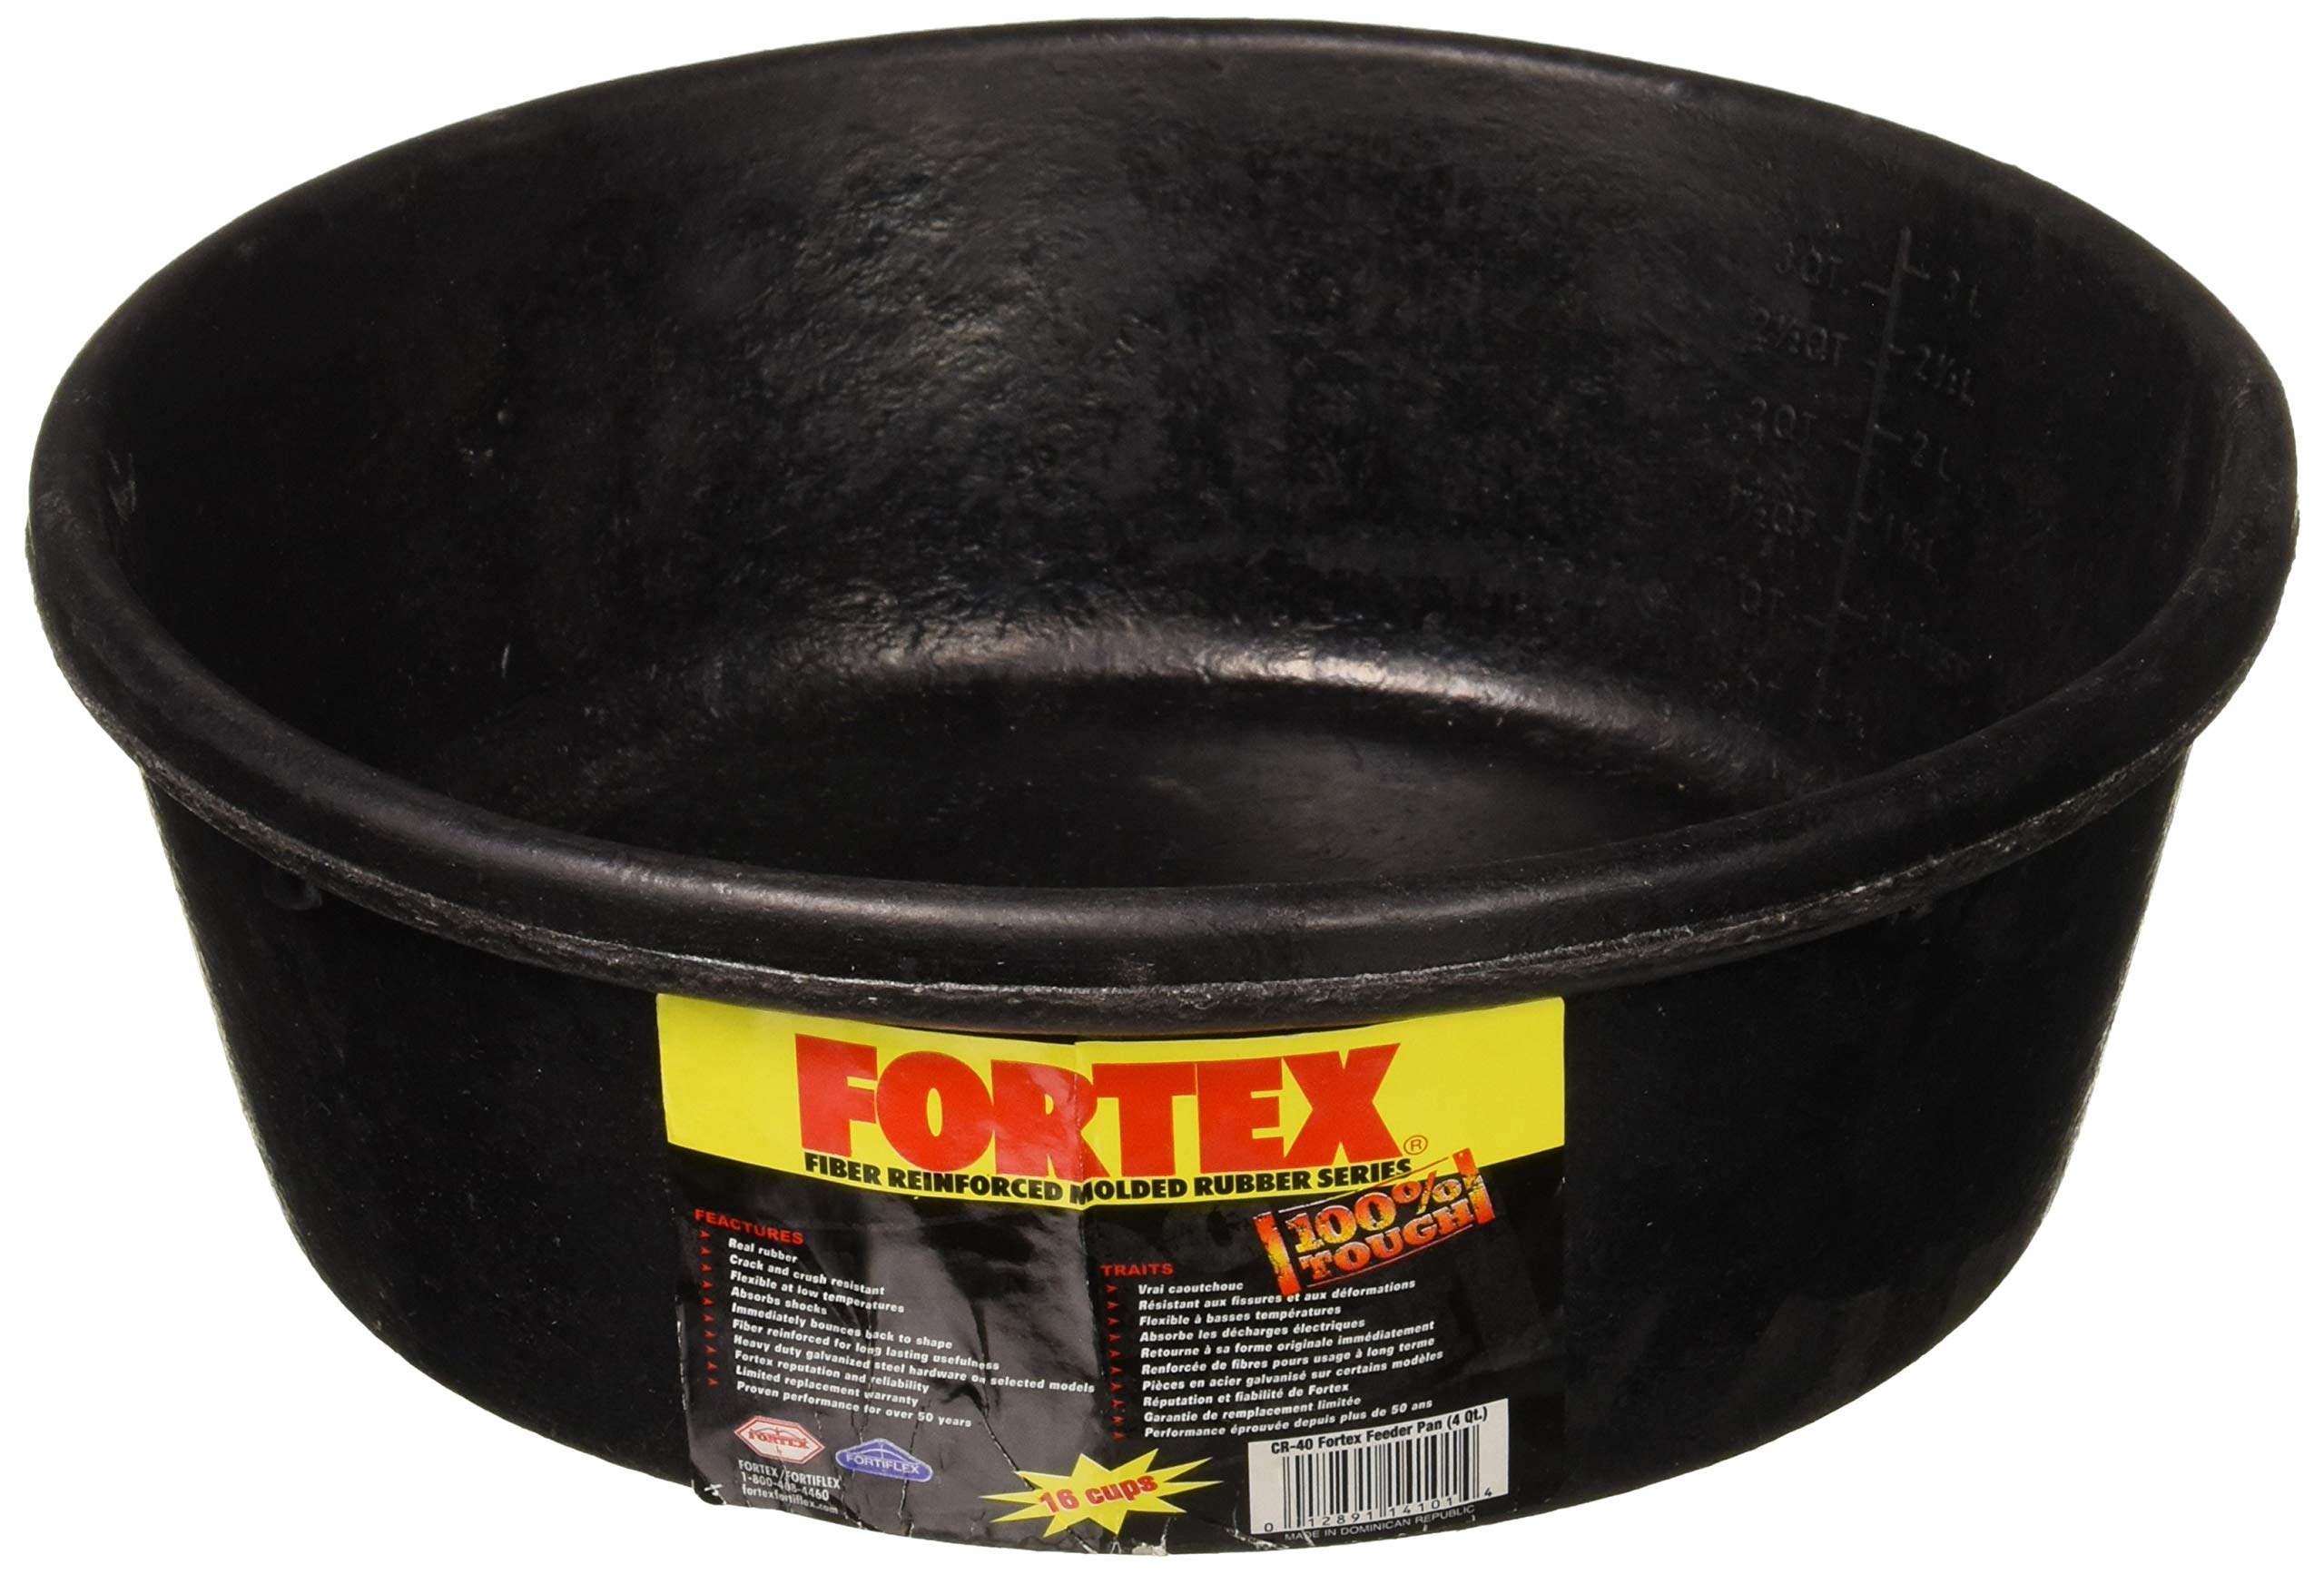 Fortex Feeder Pan for Dogs/Cats and Horses, 4-Quart by Fortex